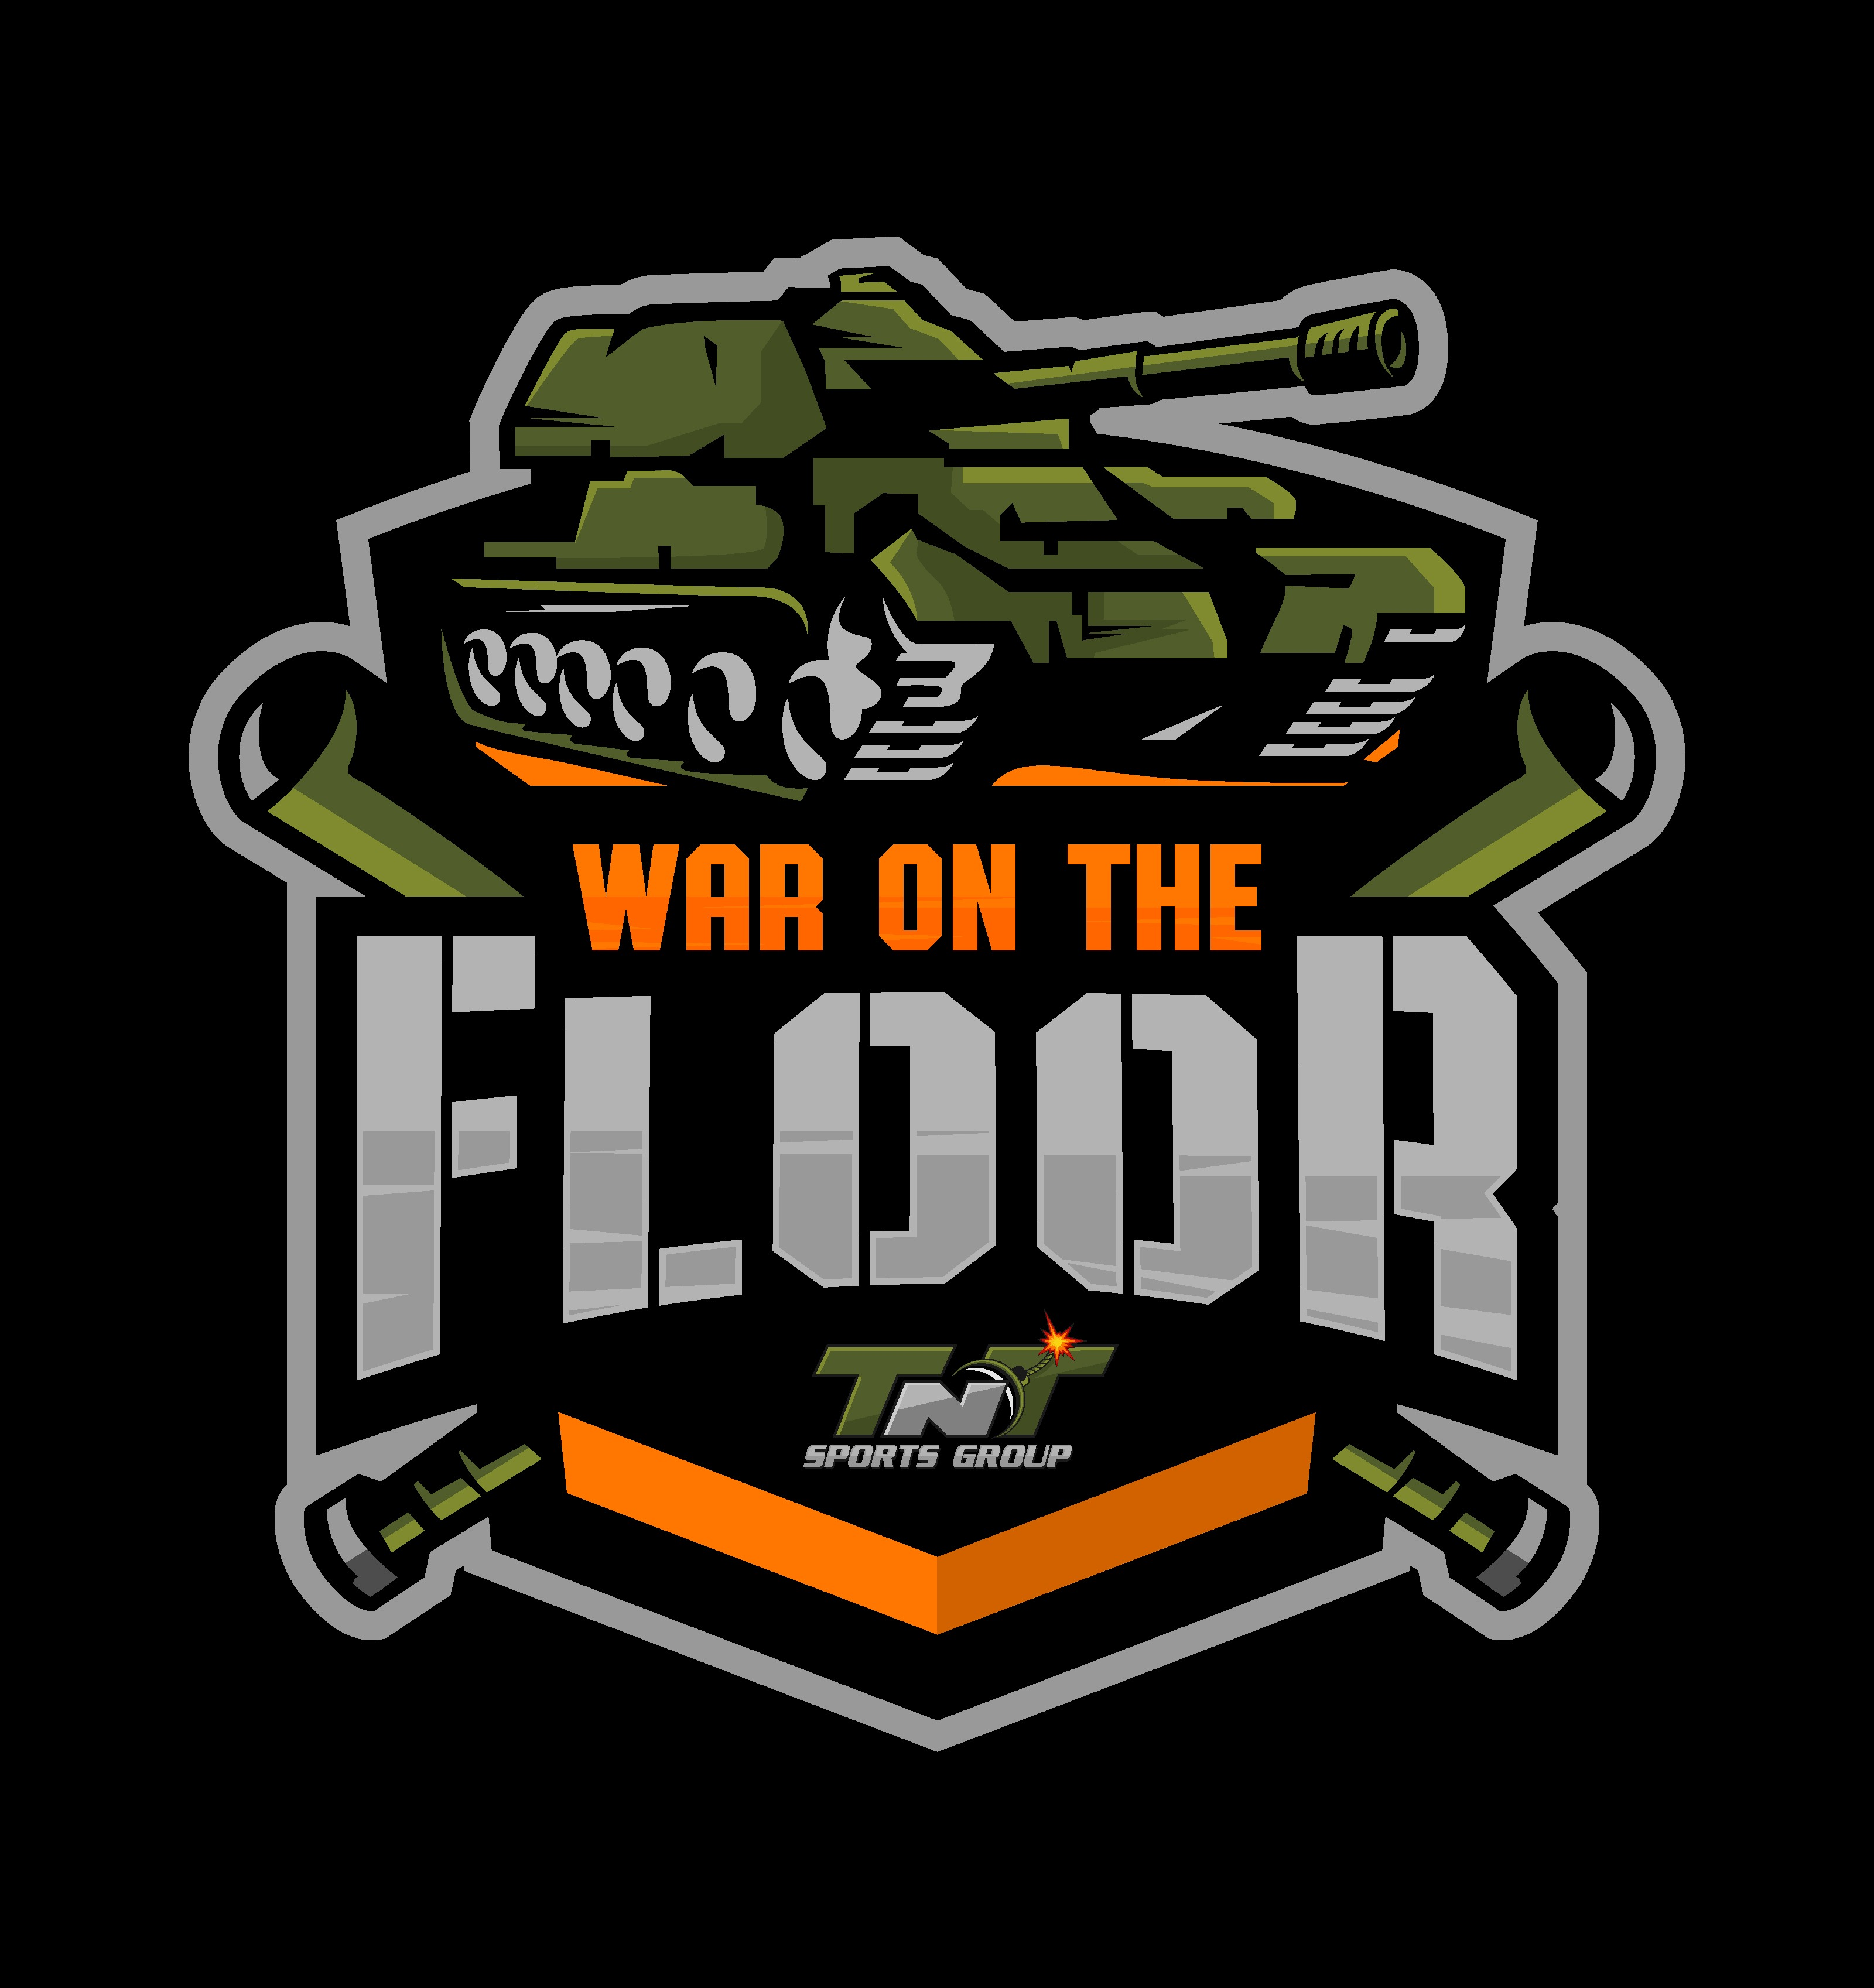 TNT Sports Group War On The Floor